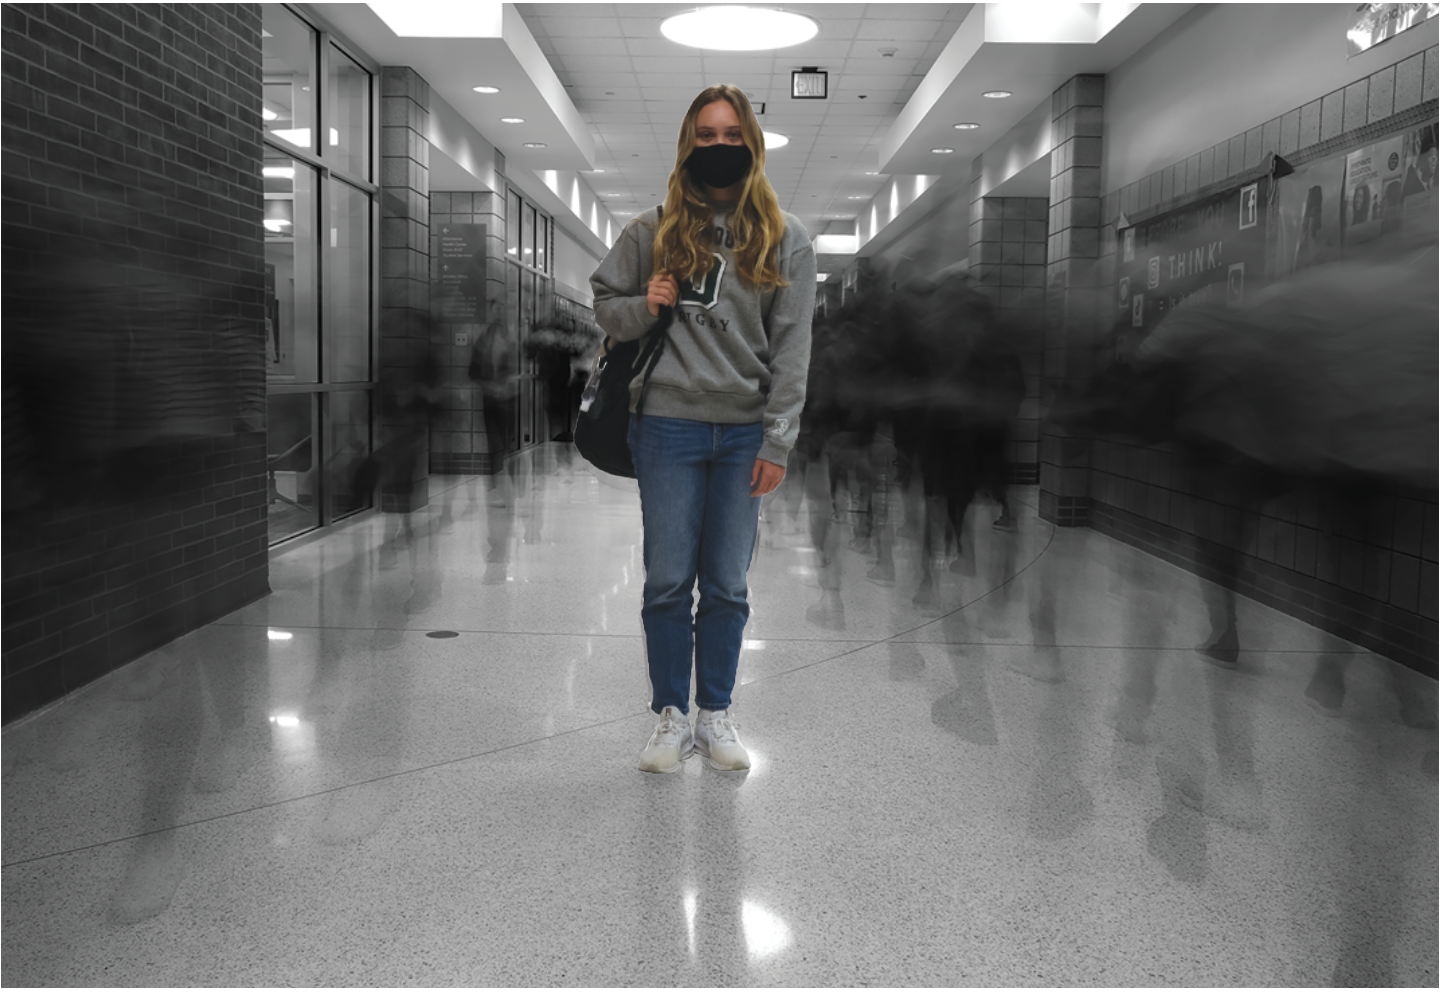 With CHS's large, competitive environment, students assess how pressures foster imposter syndrome